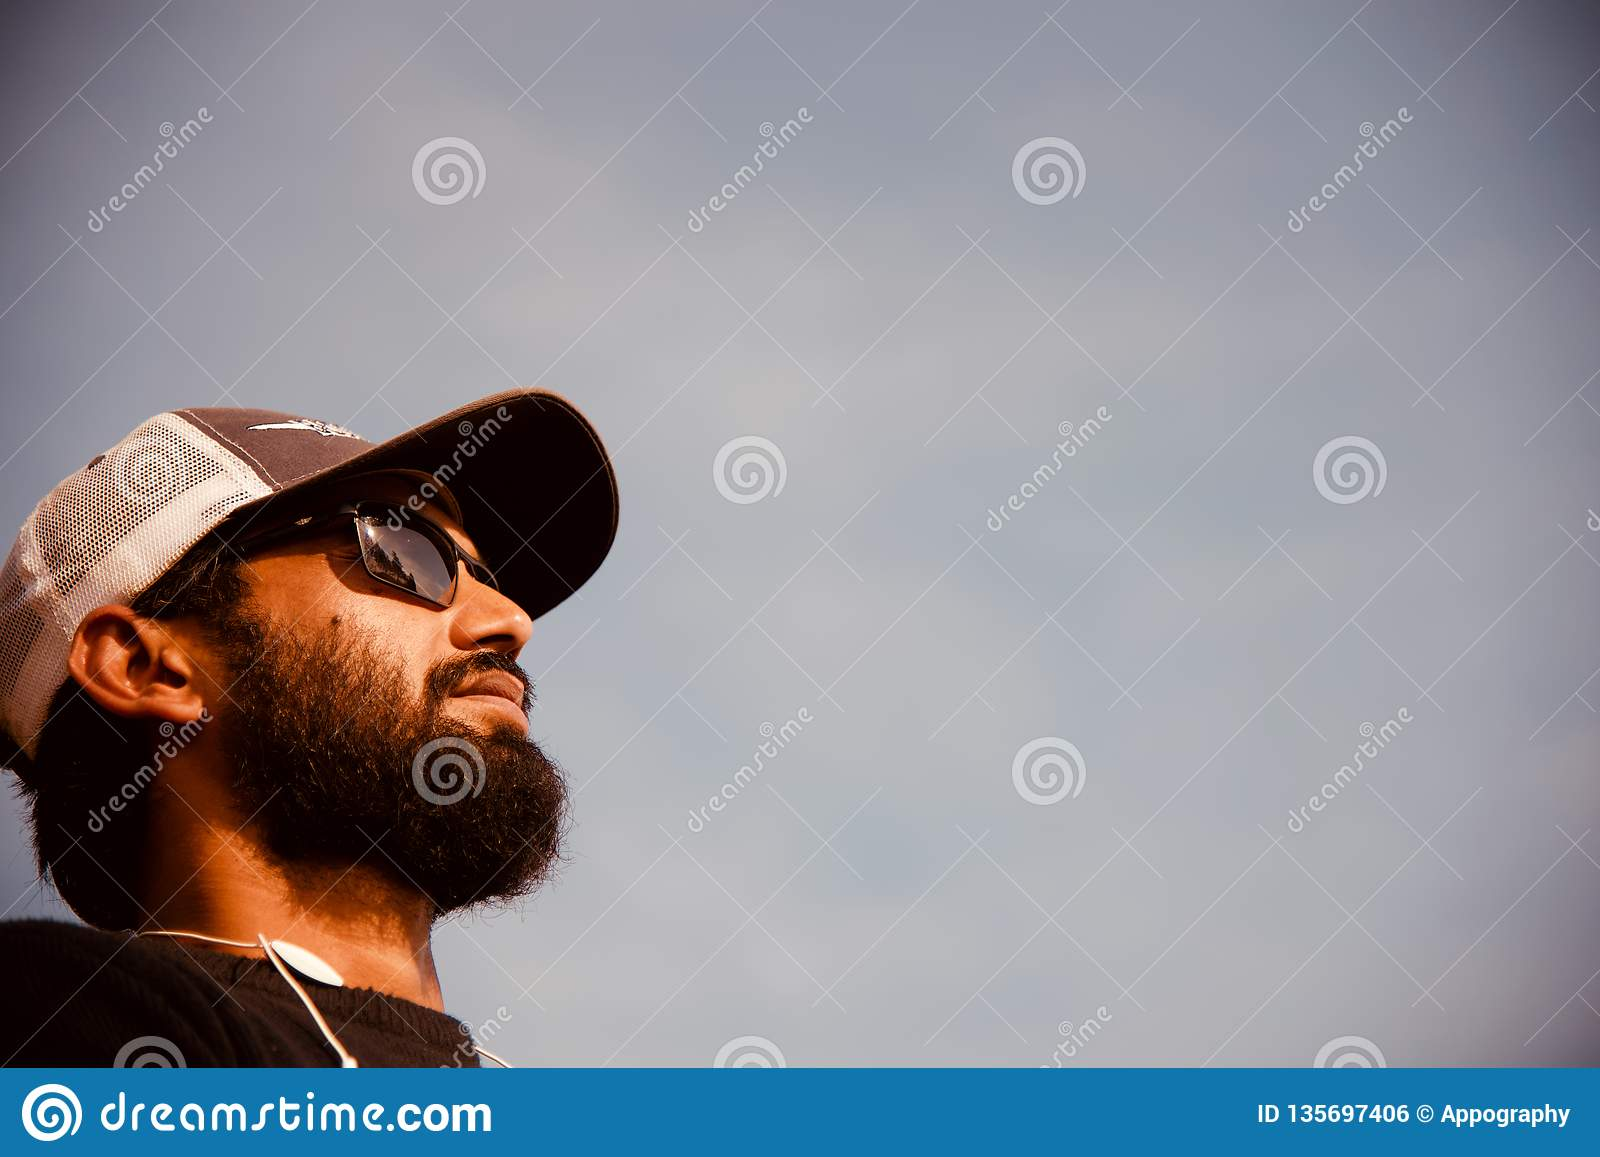 A bearded man wearing cap and sunglasses standing in a place